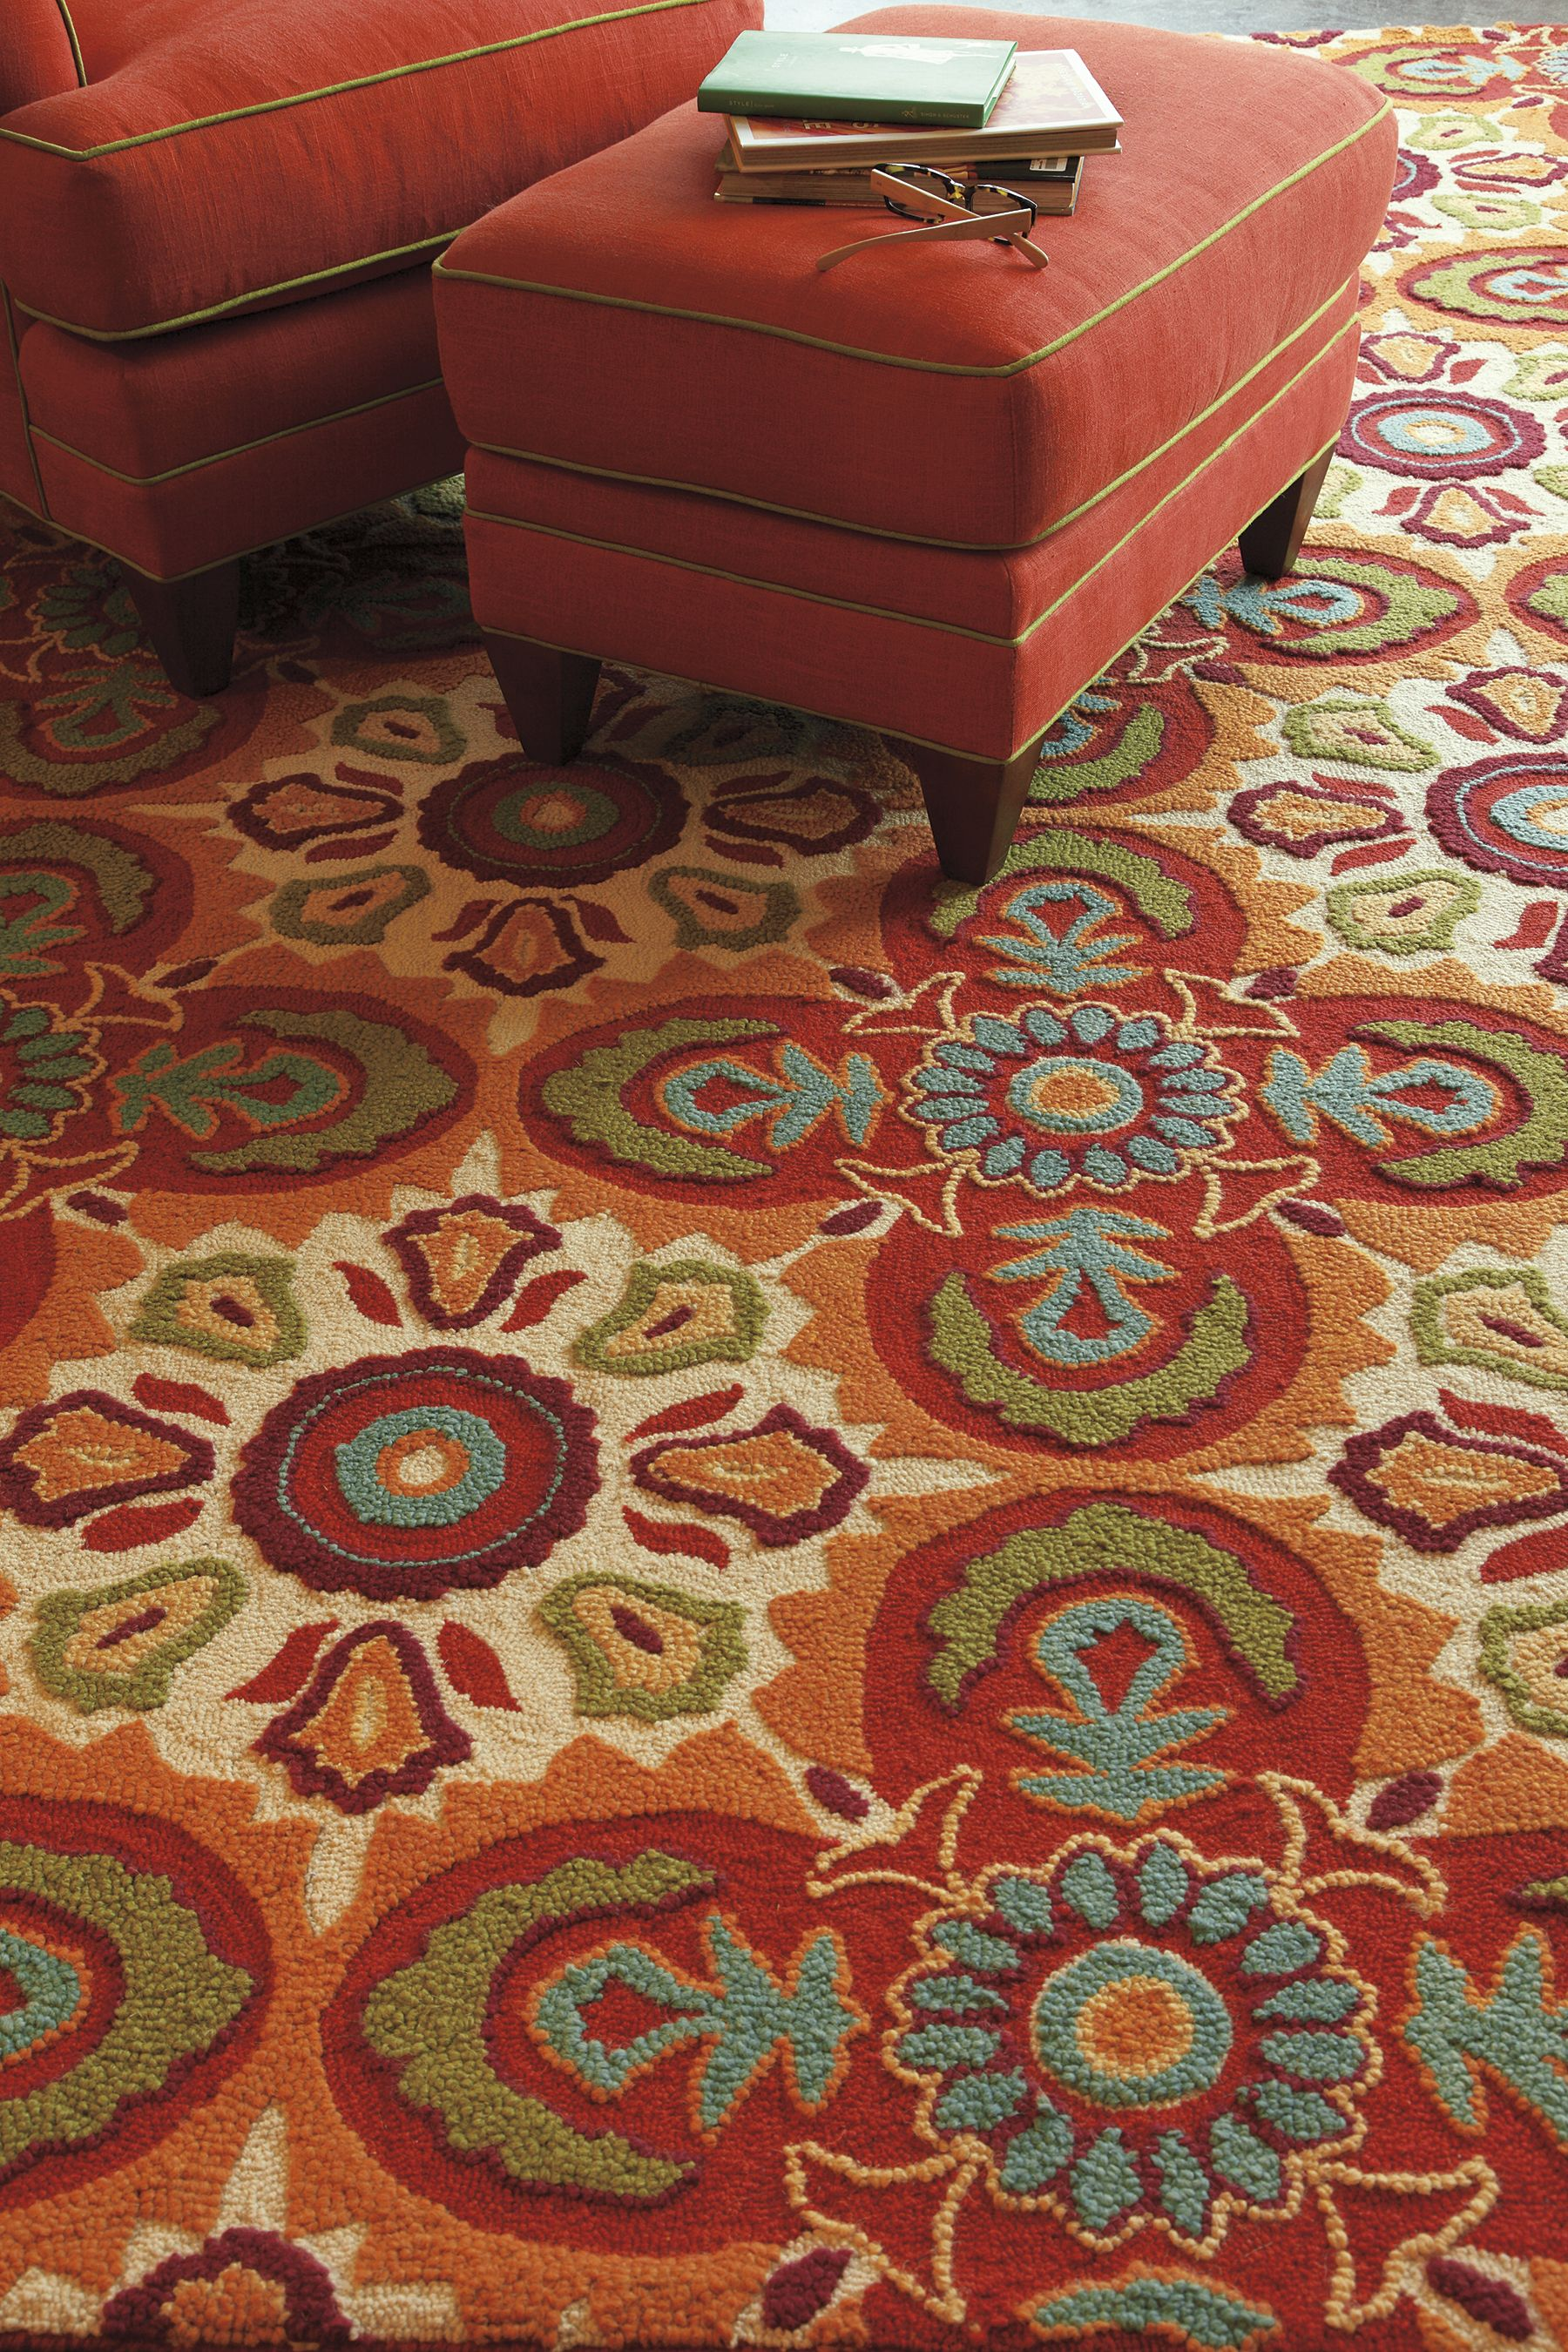 Like An Enchanting Kaleidoscope Or Magnificent Mosaic Tile Floor The Tara Rug Marries A Floral Medallion P Living Room Decor Fireplace Rugs Orange Area Rug